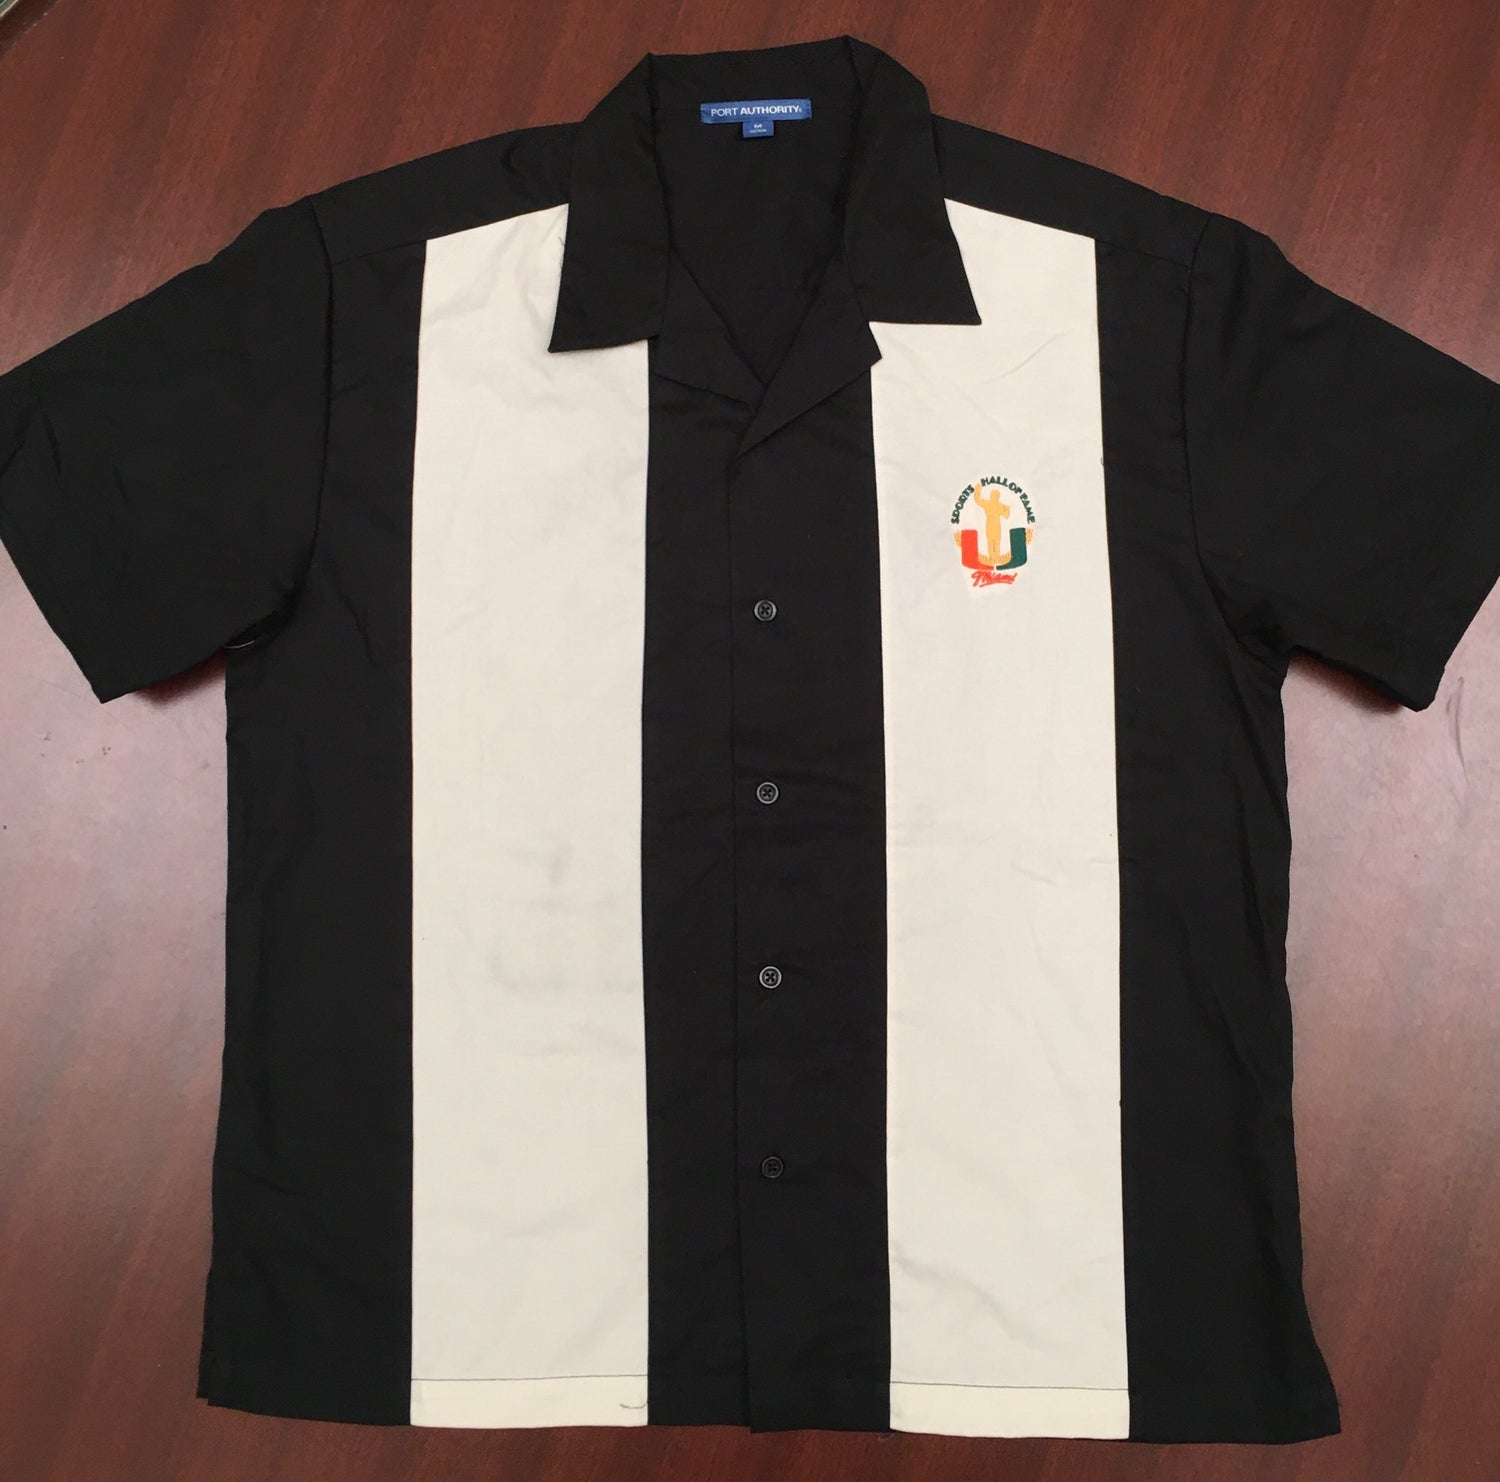 Image of UMSHoF Celebrity Bowling Tournament Bowling Shirt